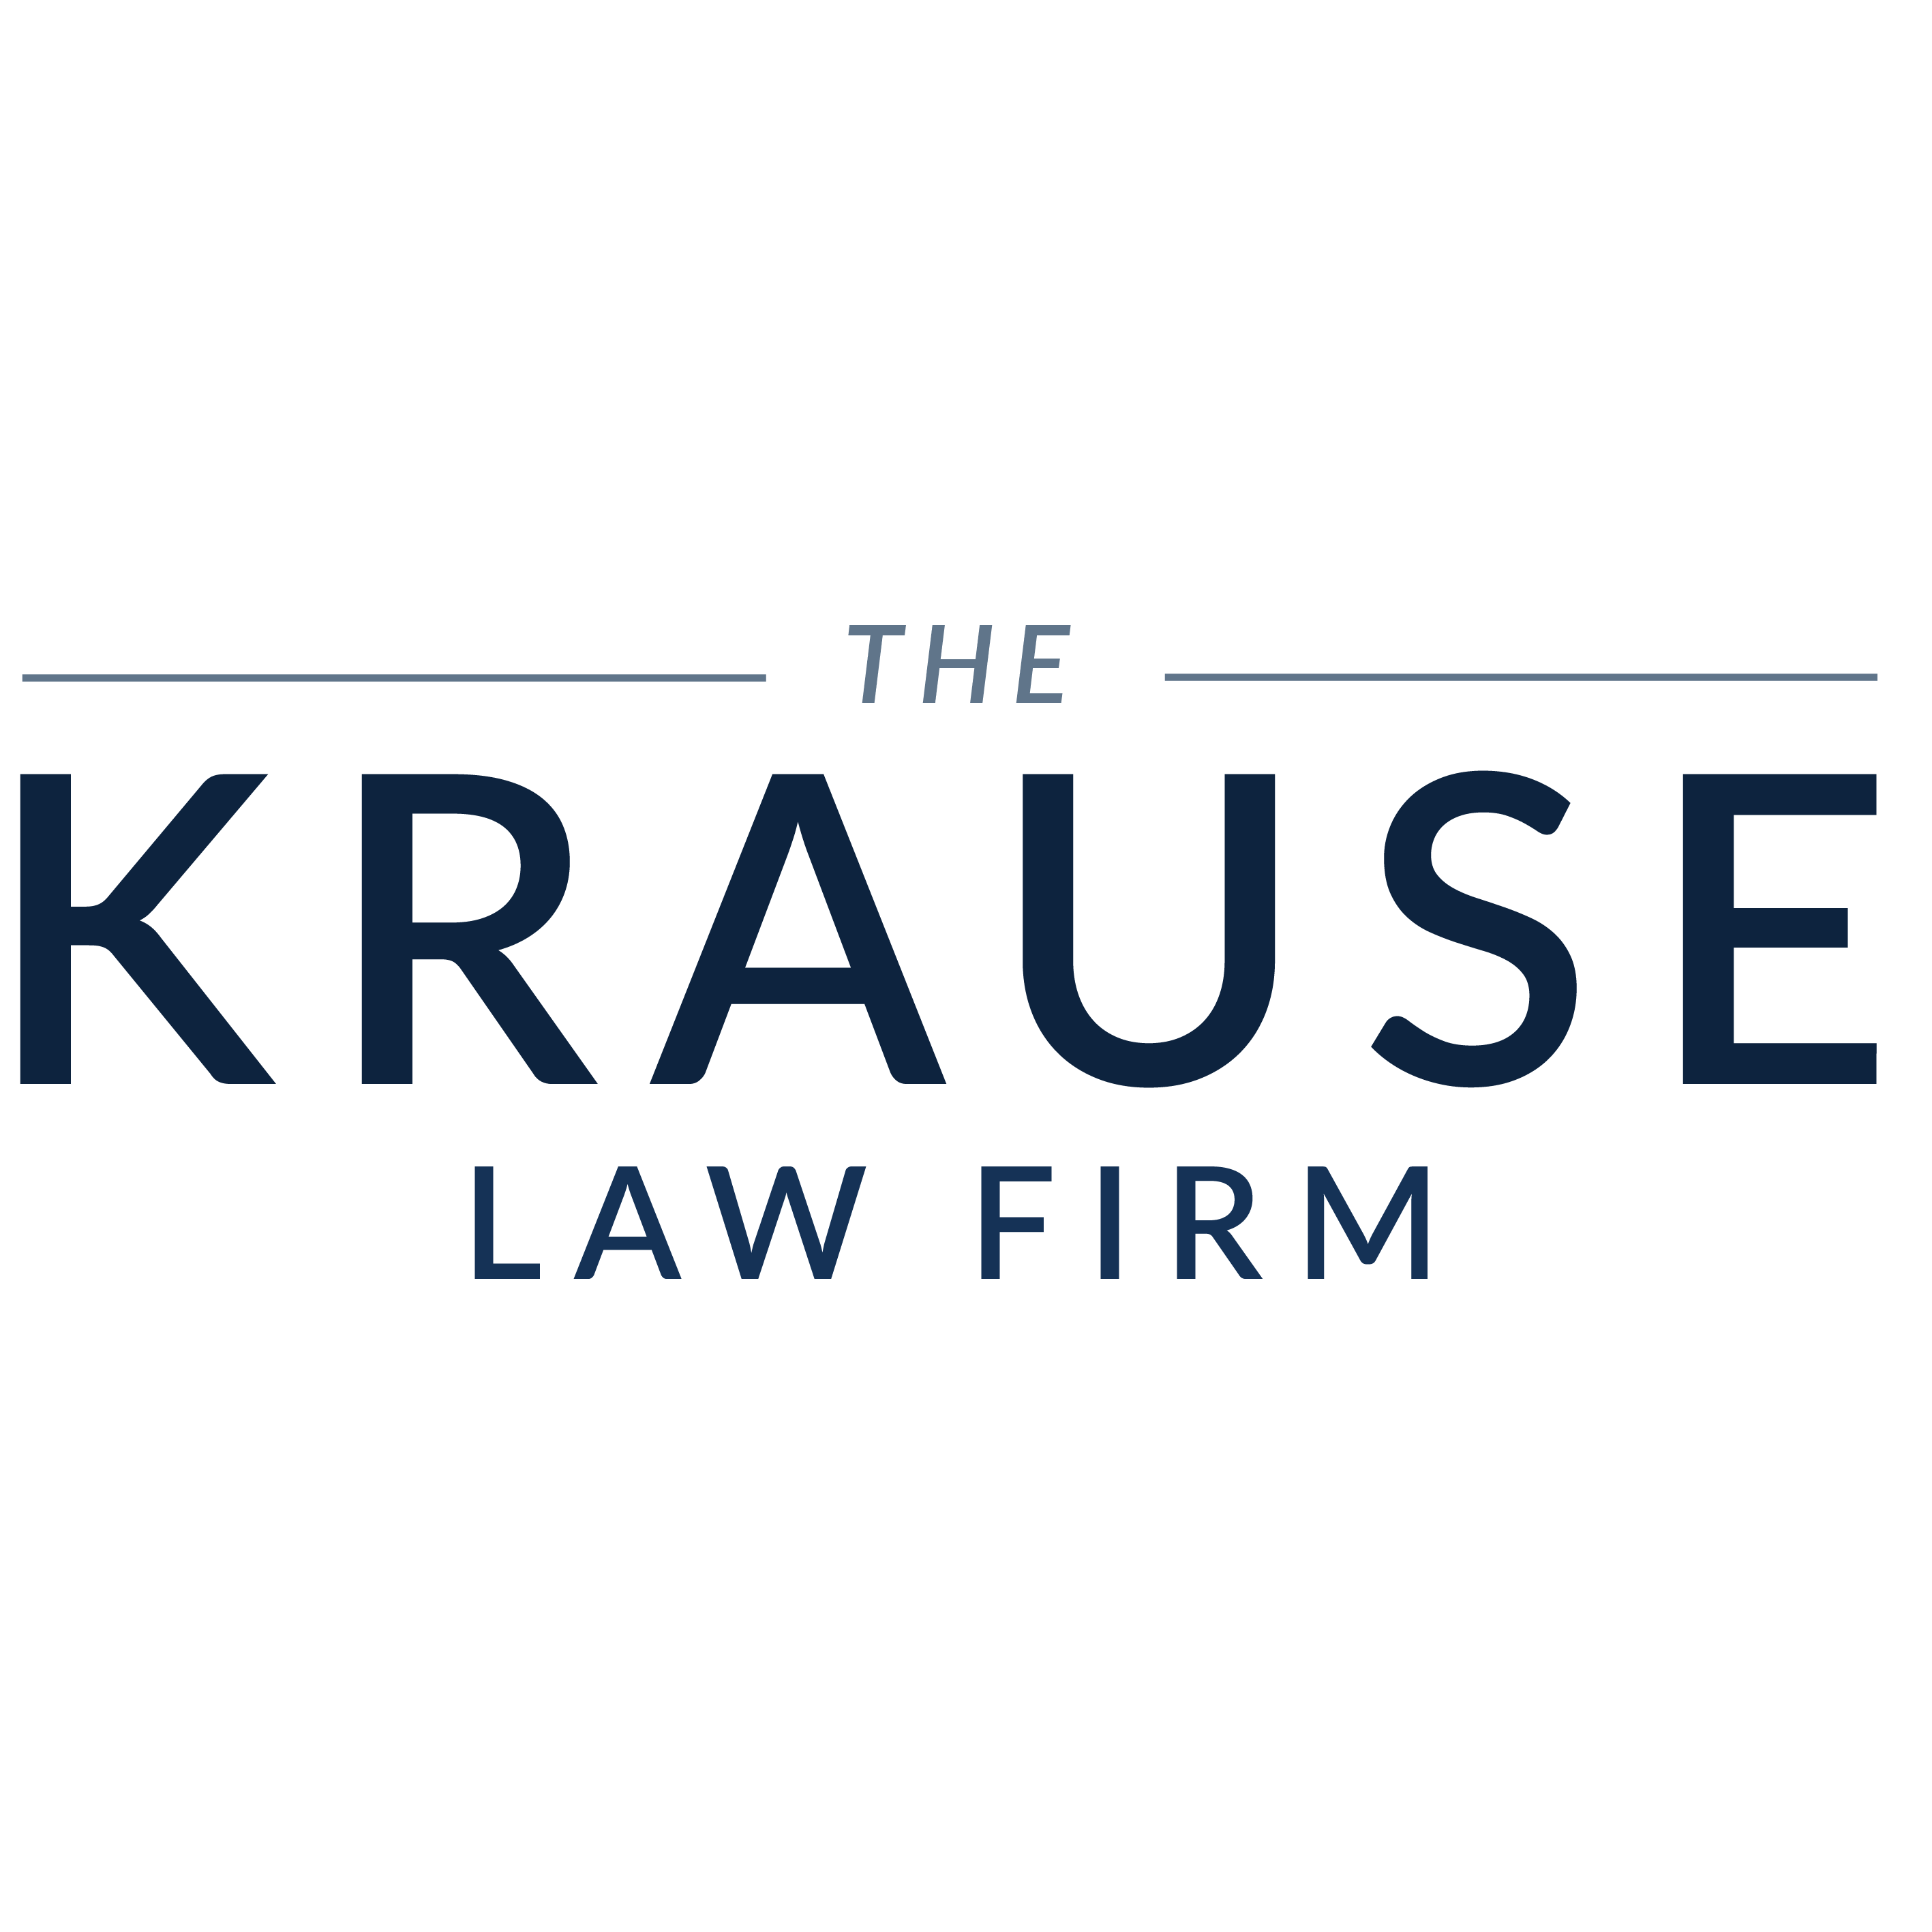 The Krause Law Firm